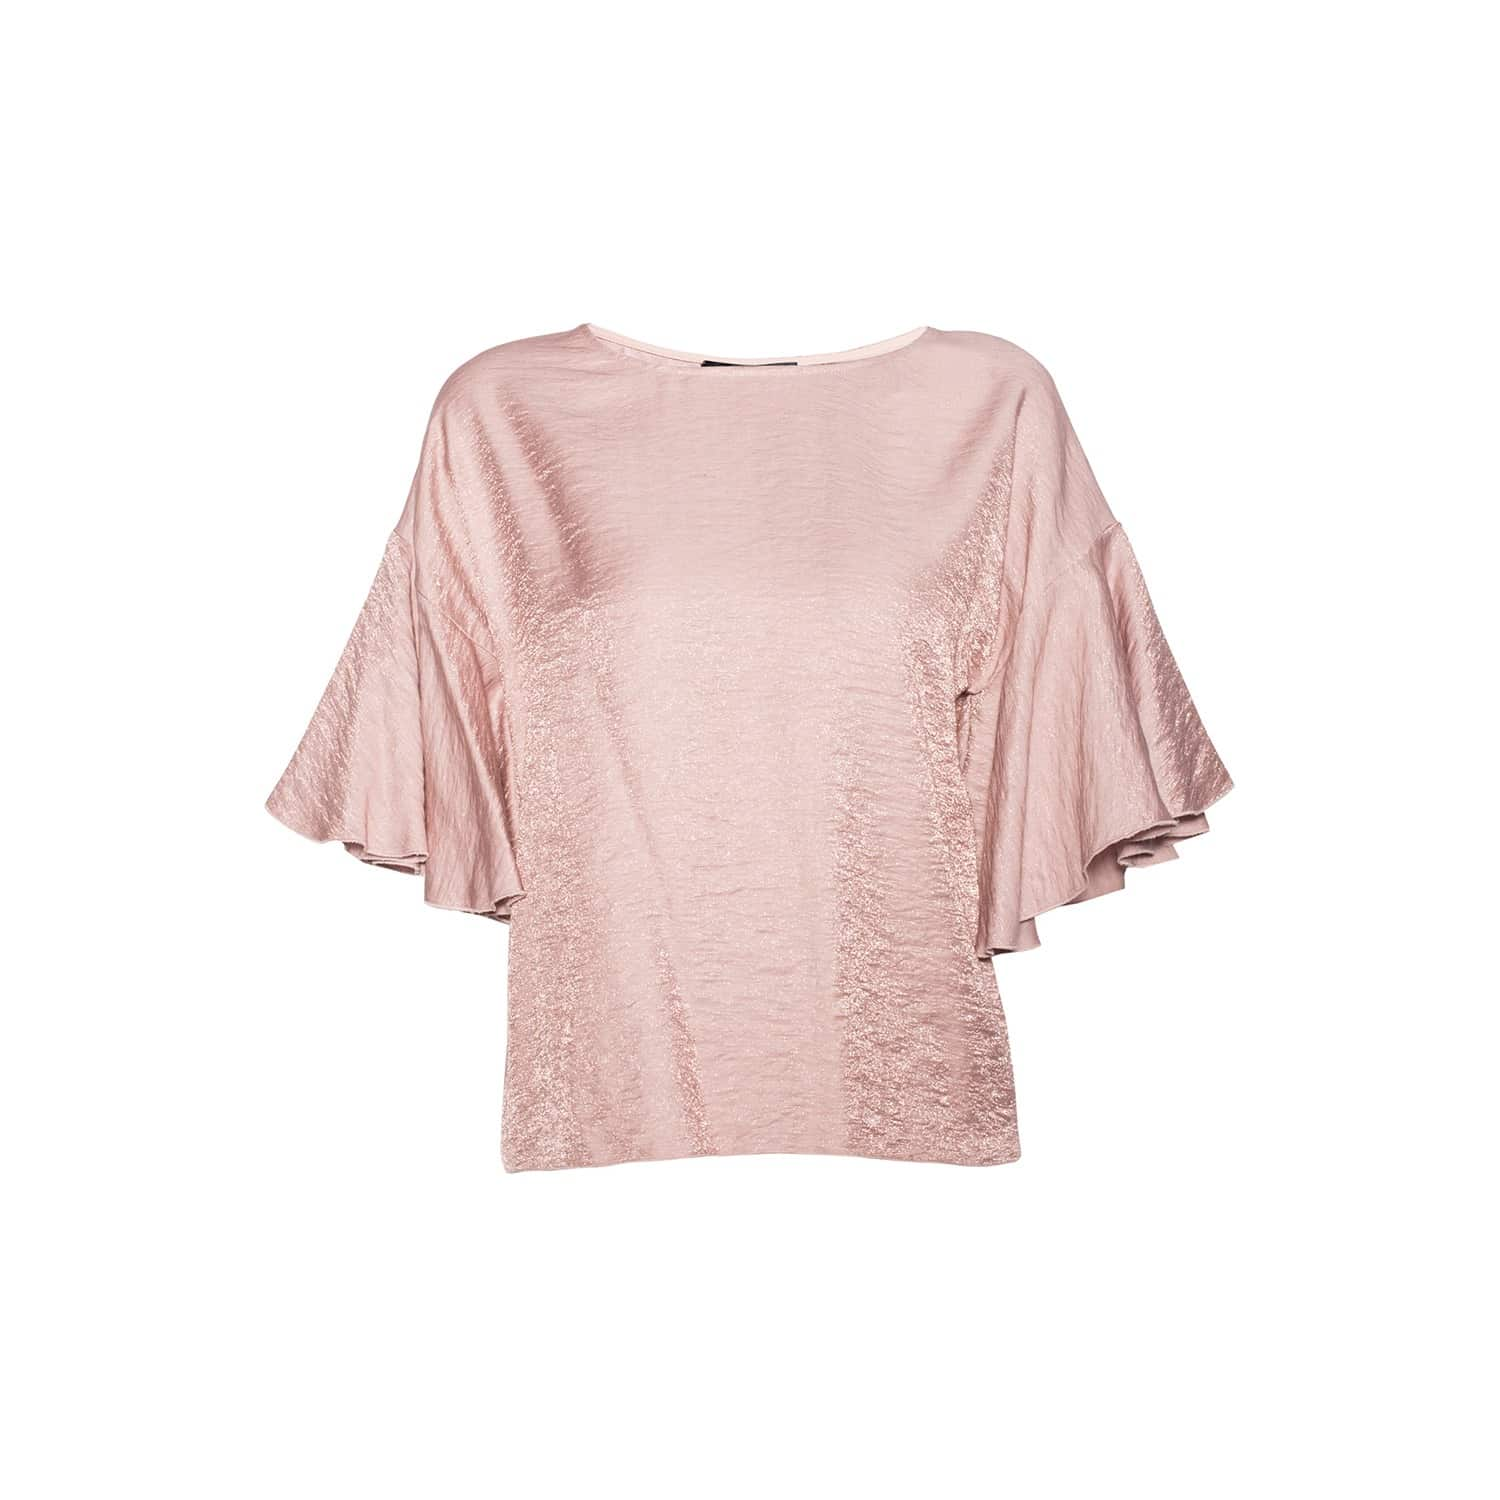 24692fd2402 Elegant Top With Butterfly Sleeves image